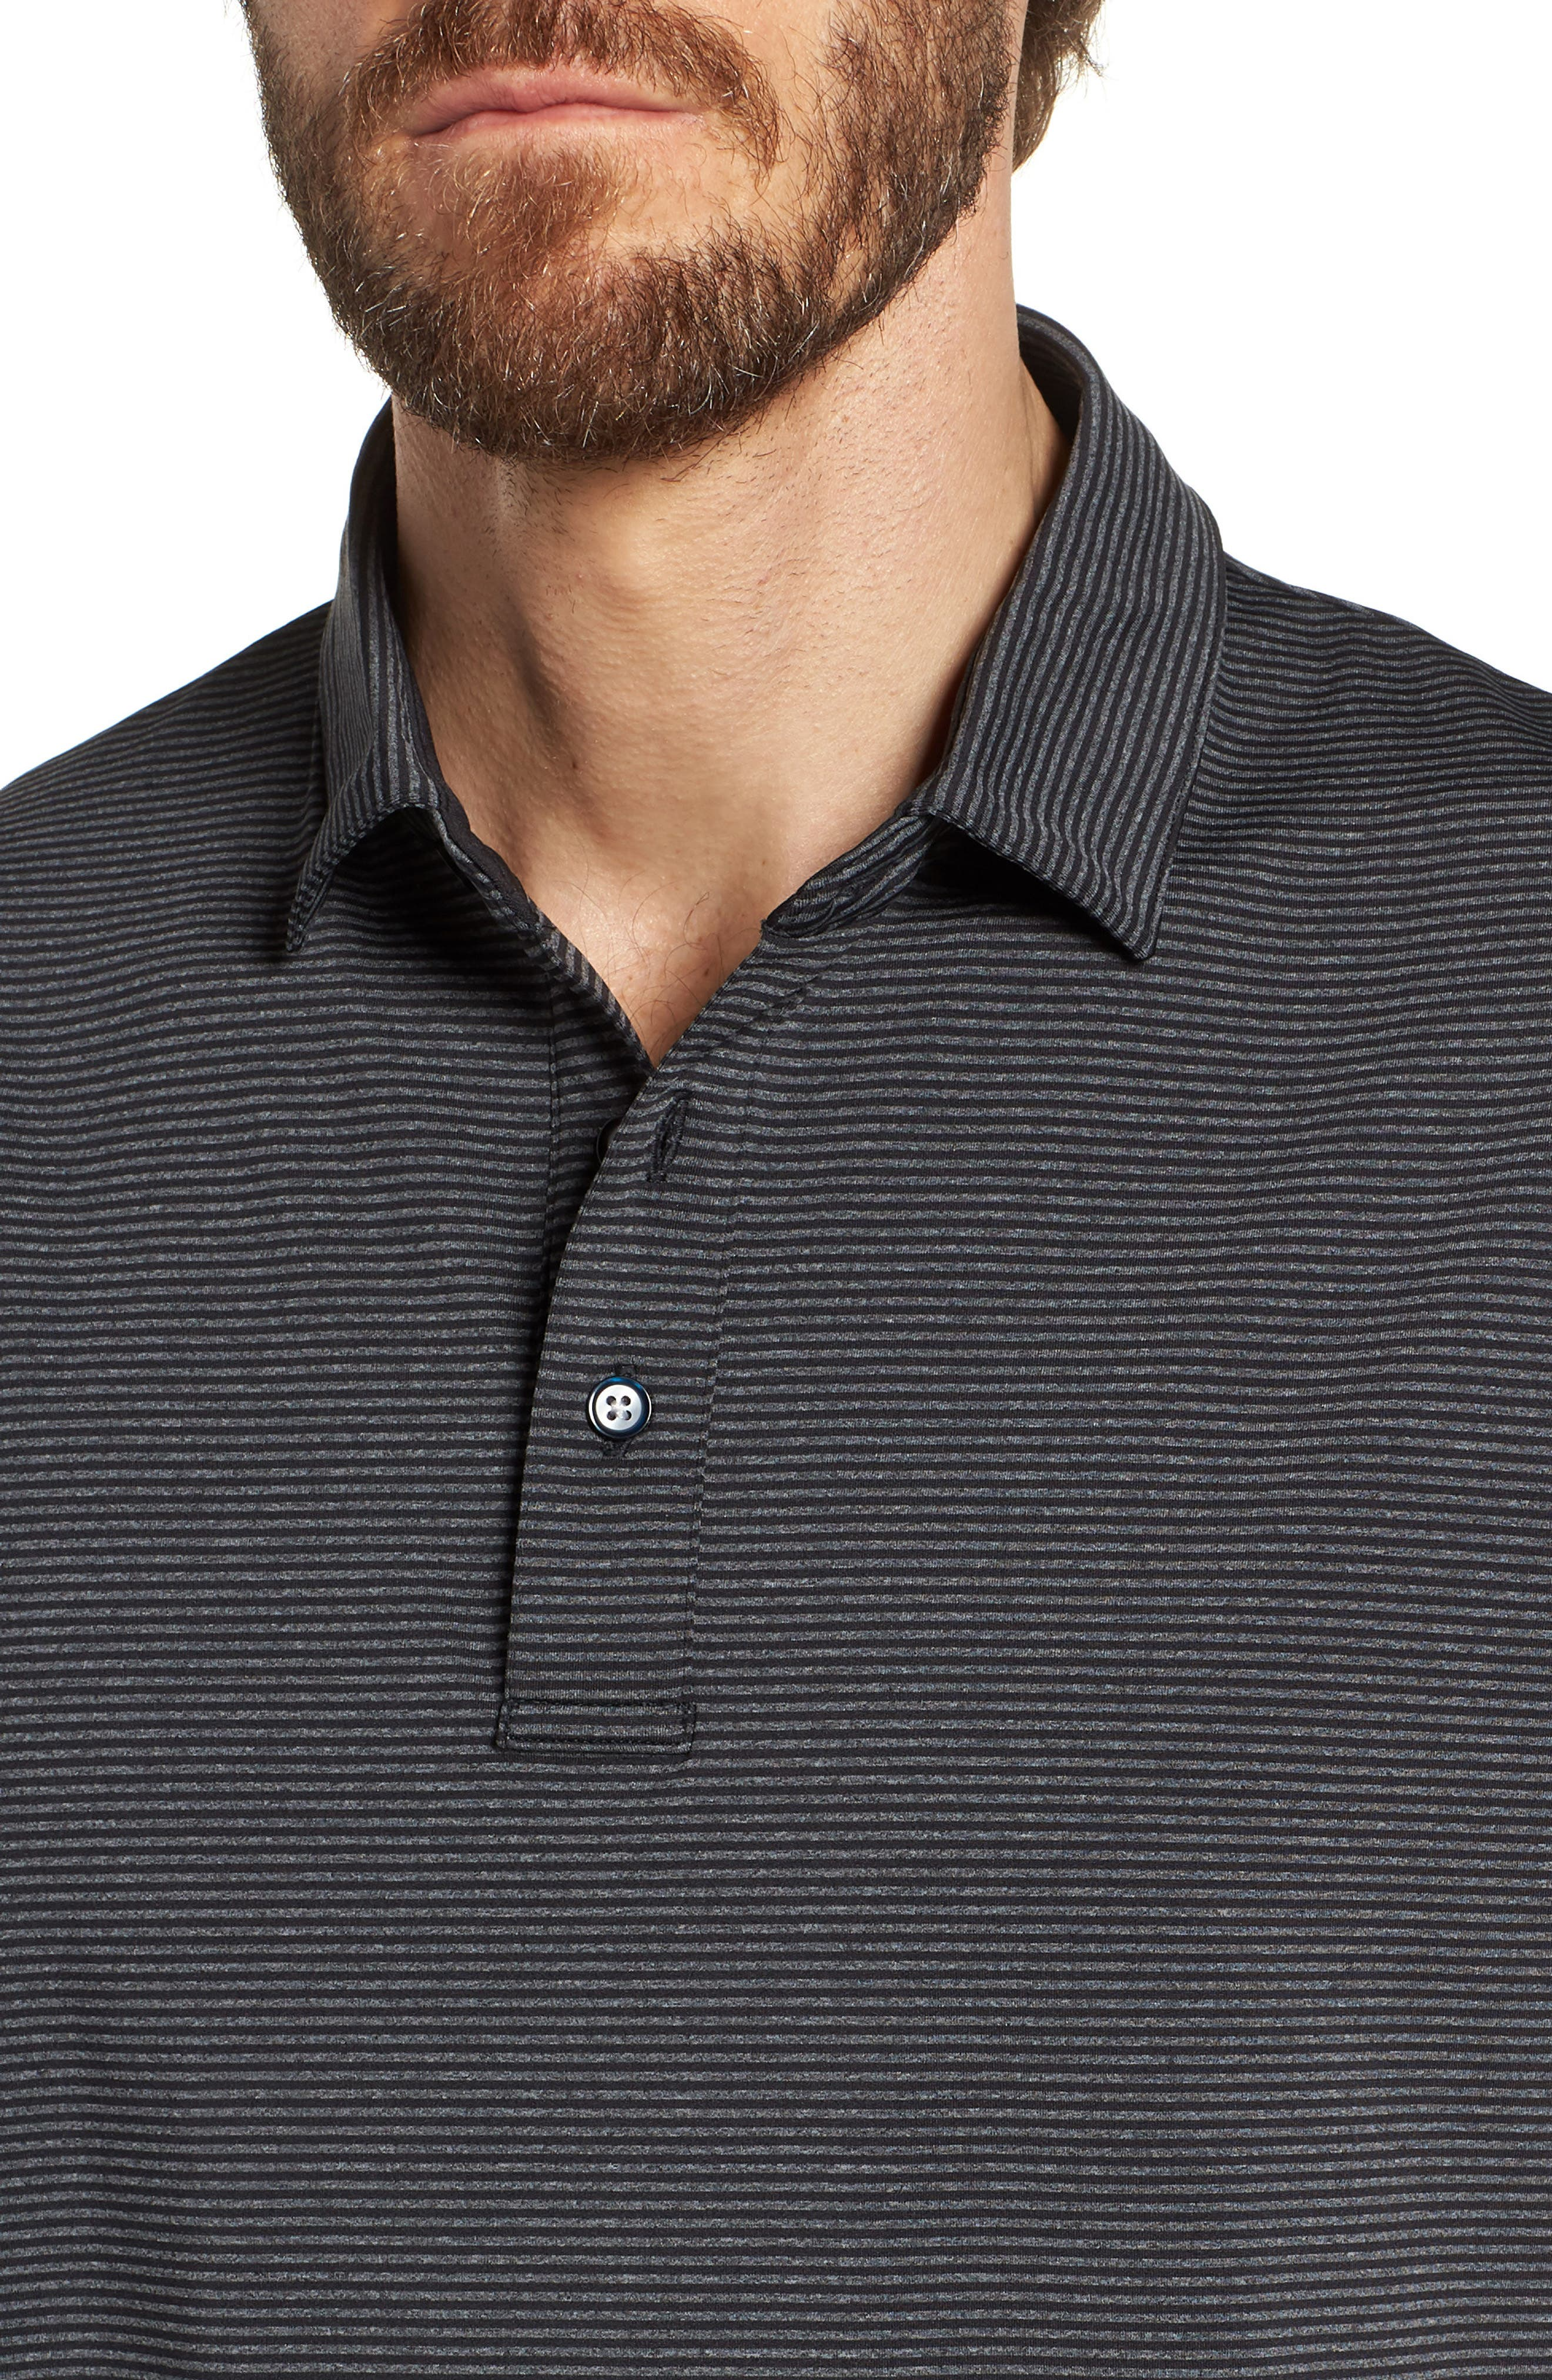 Oracle Stripe Jersey Polo,                             Alternate thumbnail 4, color,                             Caviar/ Charcoal